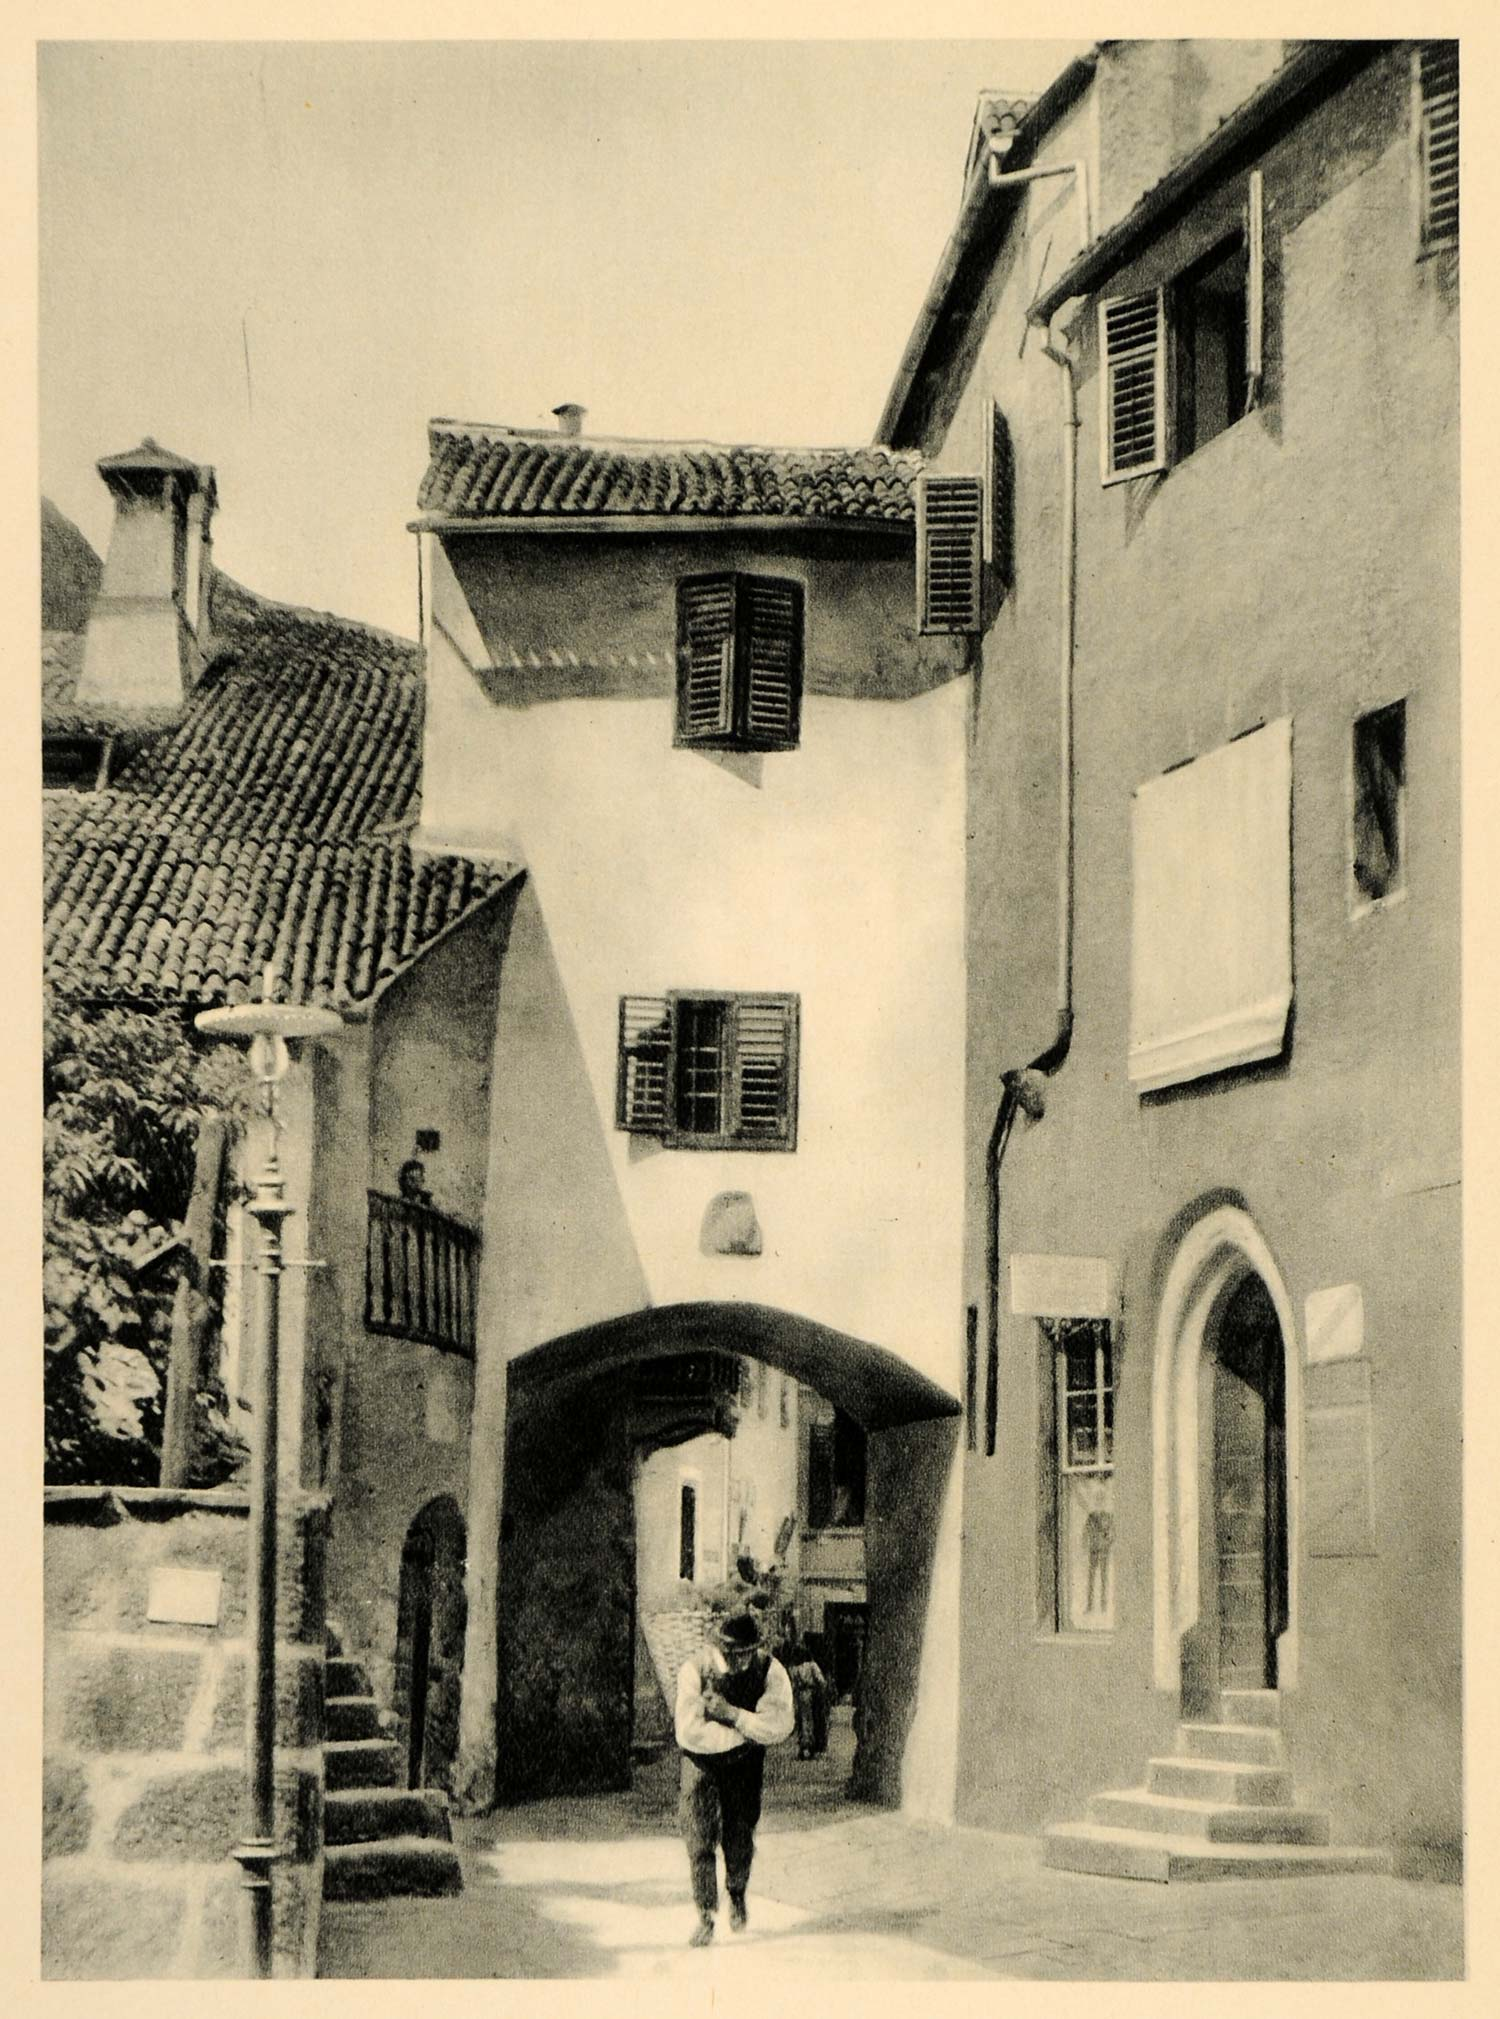 1927 Merano Italy Town Street Buildings Architecture - ORIGINAL PHOTOGRAVURE IT3